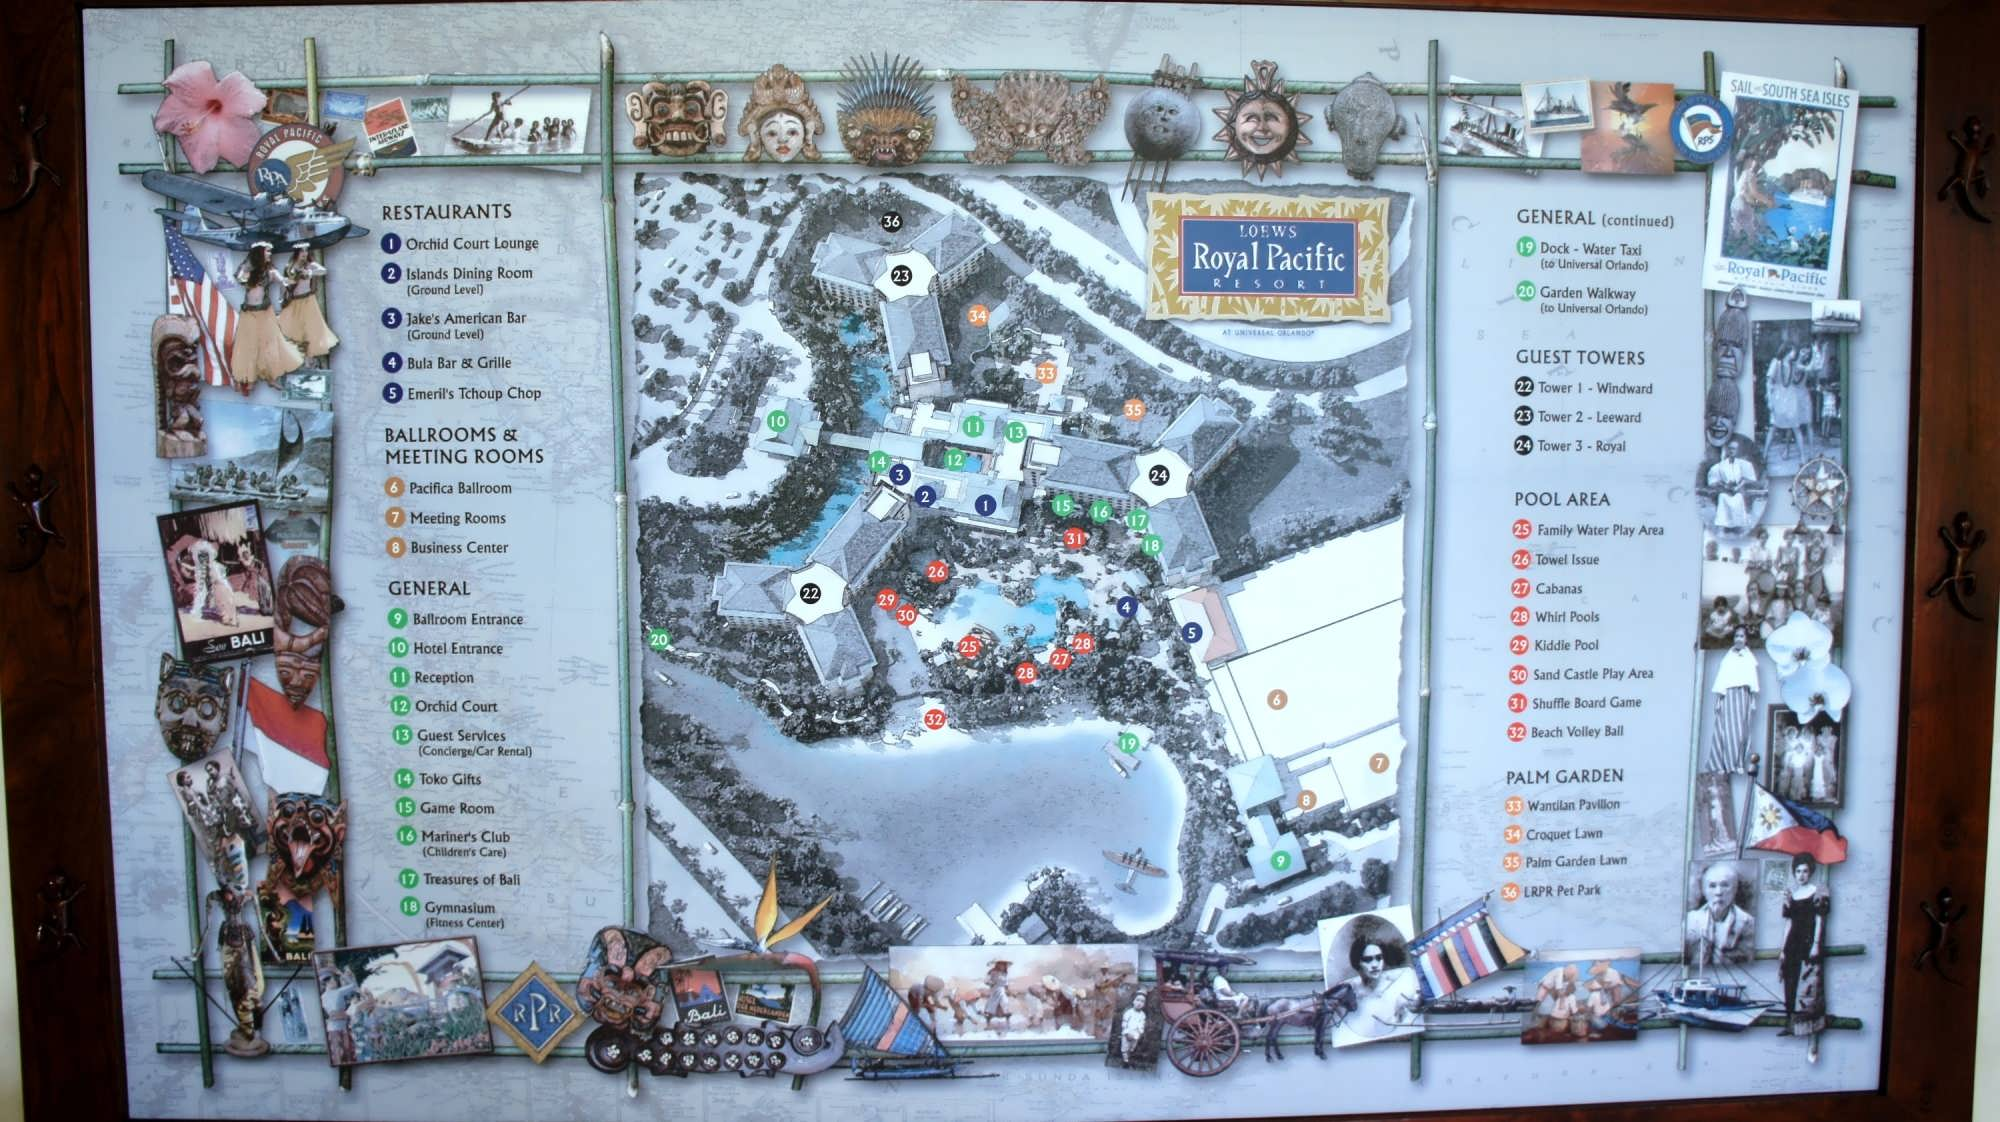 Royal Pacific Resort map